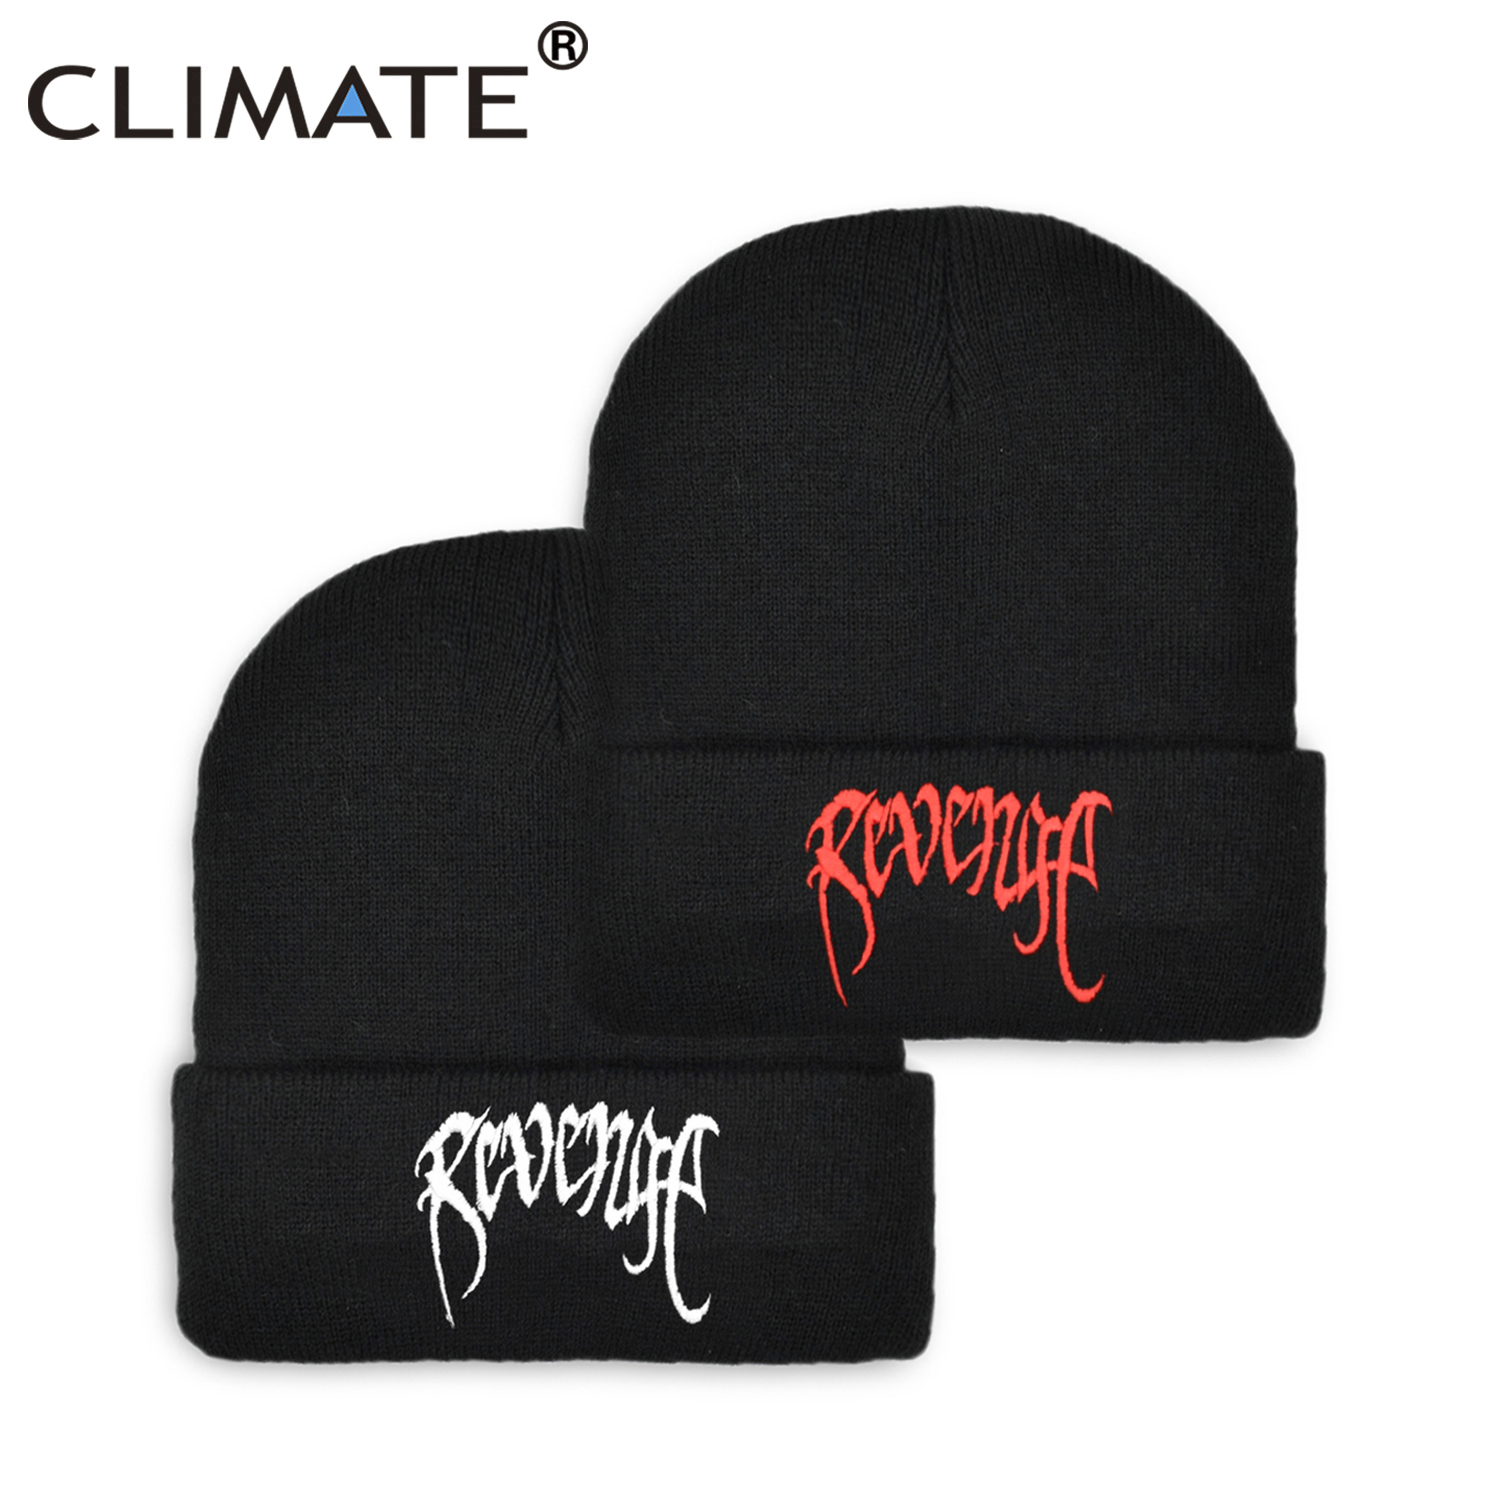 CLIMATE Xxxtenta Revenge Beanie Hat Beanies Tentacion Winter Dreadlocks Hat Cap Warm Knit Hip Hop Beanie Hat Caps For Men